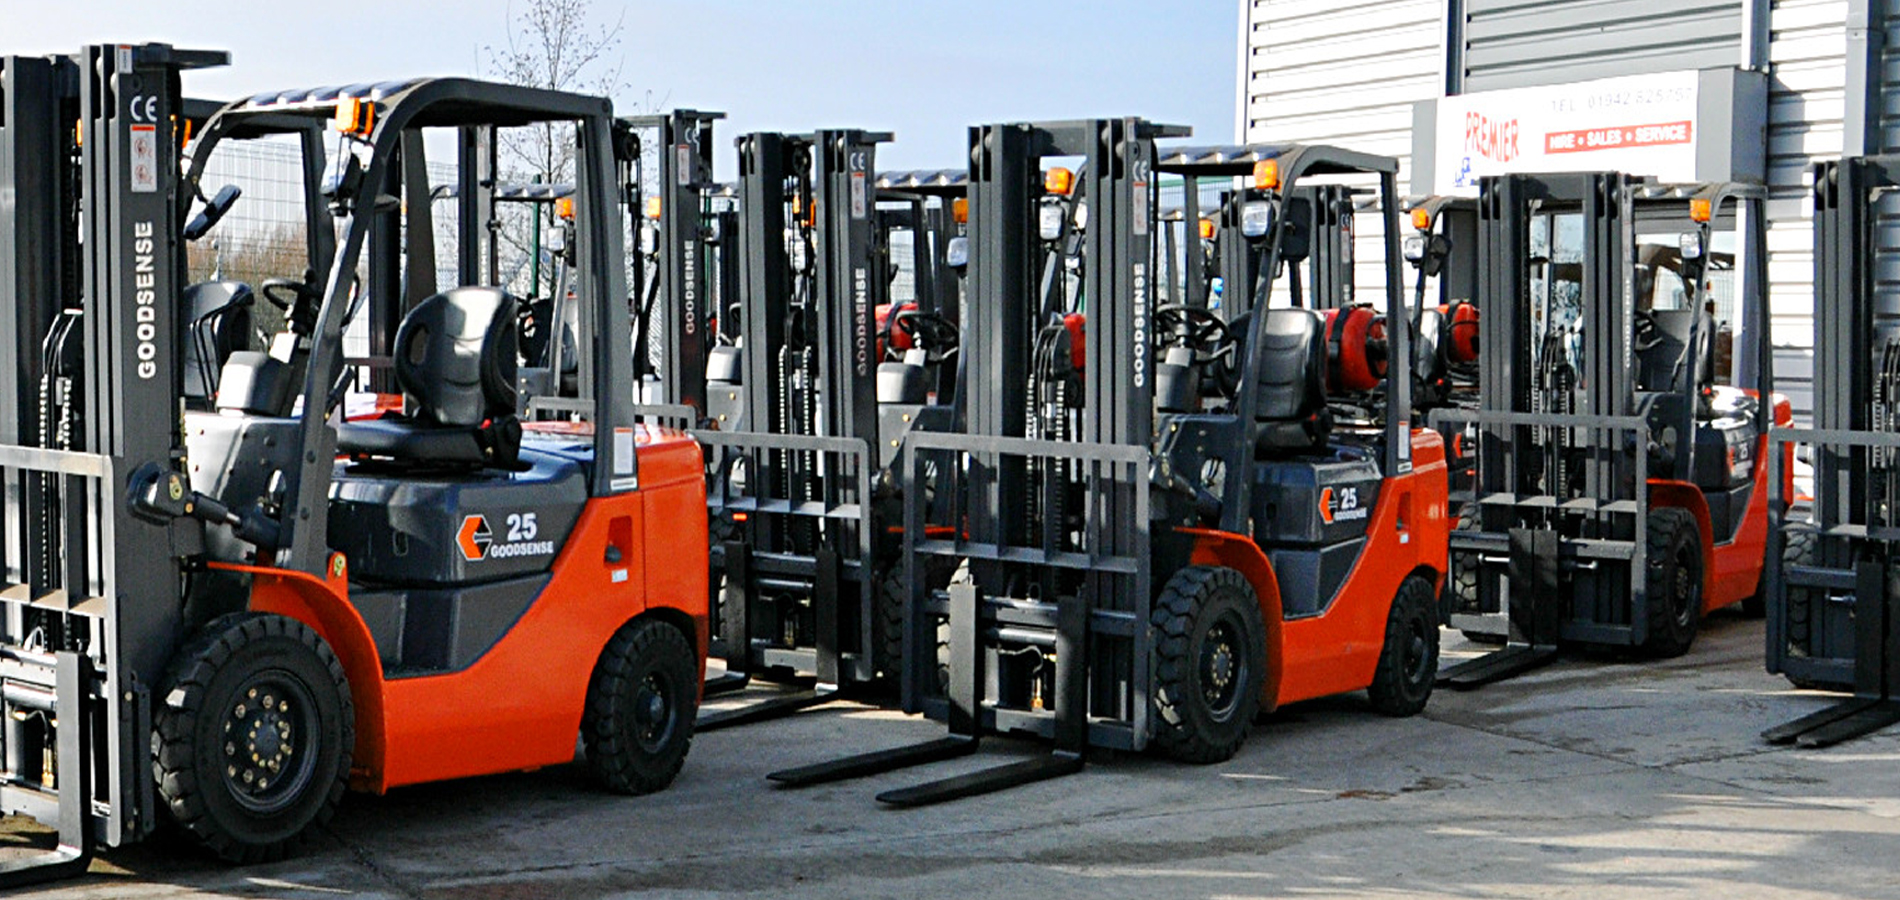 goodsense forklift trucks for sale